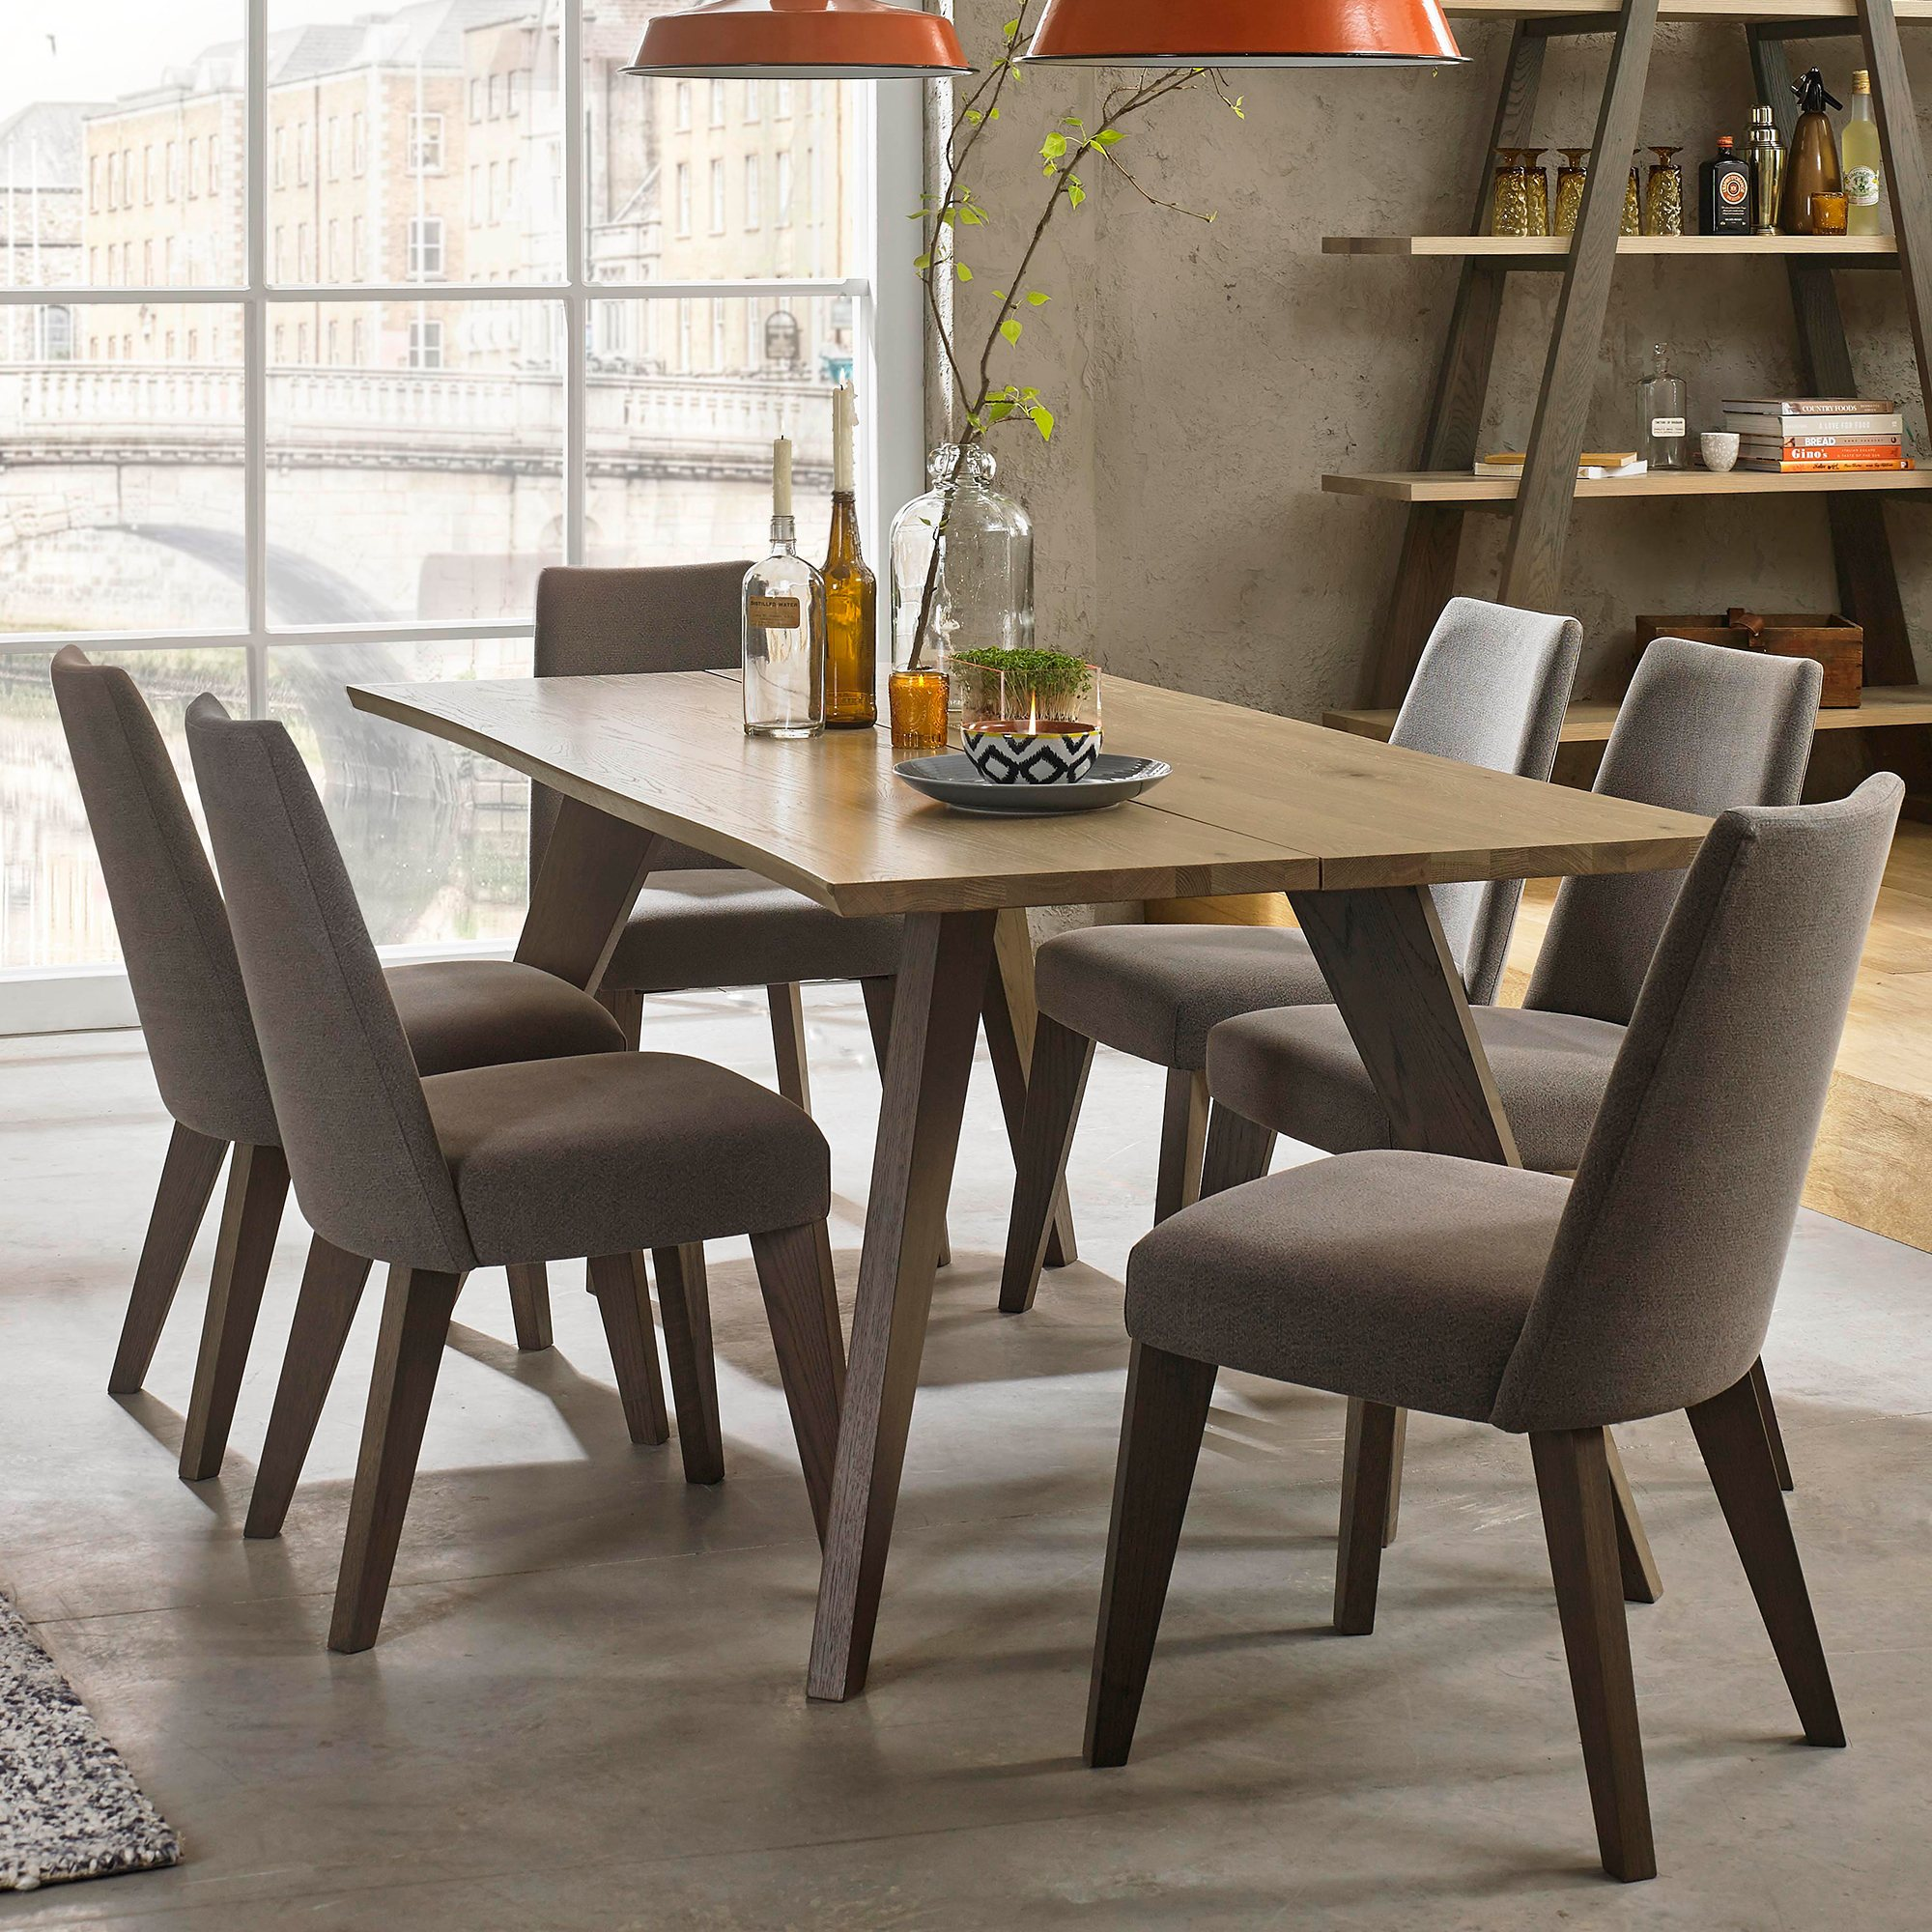 CARELL 180CM DINING TABLE - L180cm x D96cm x H77cm